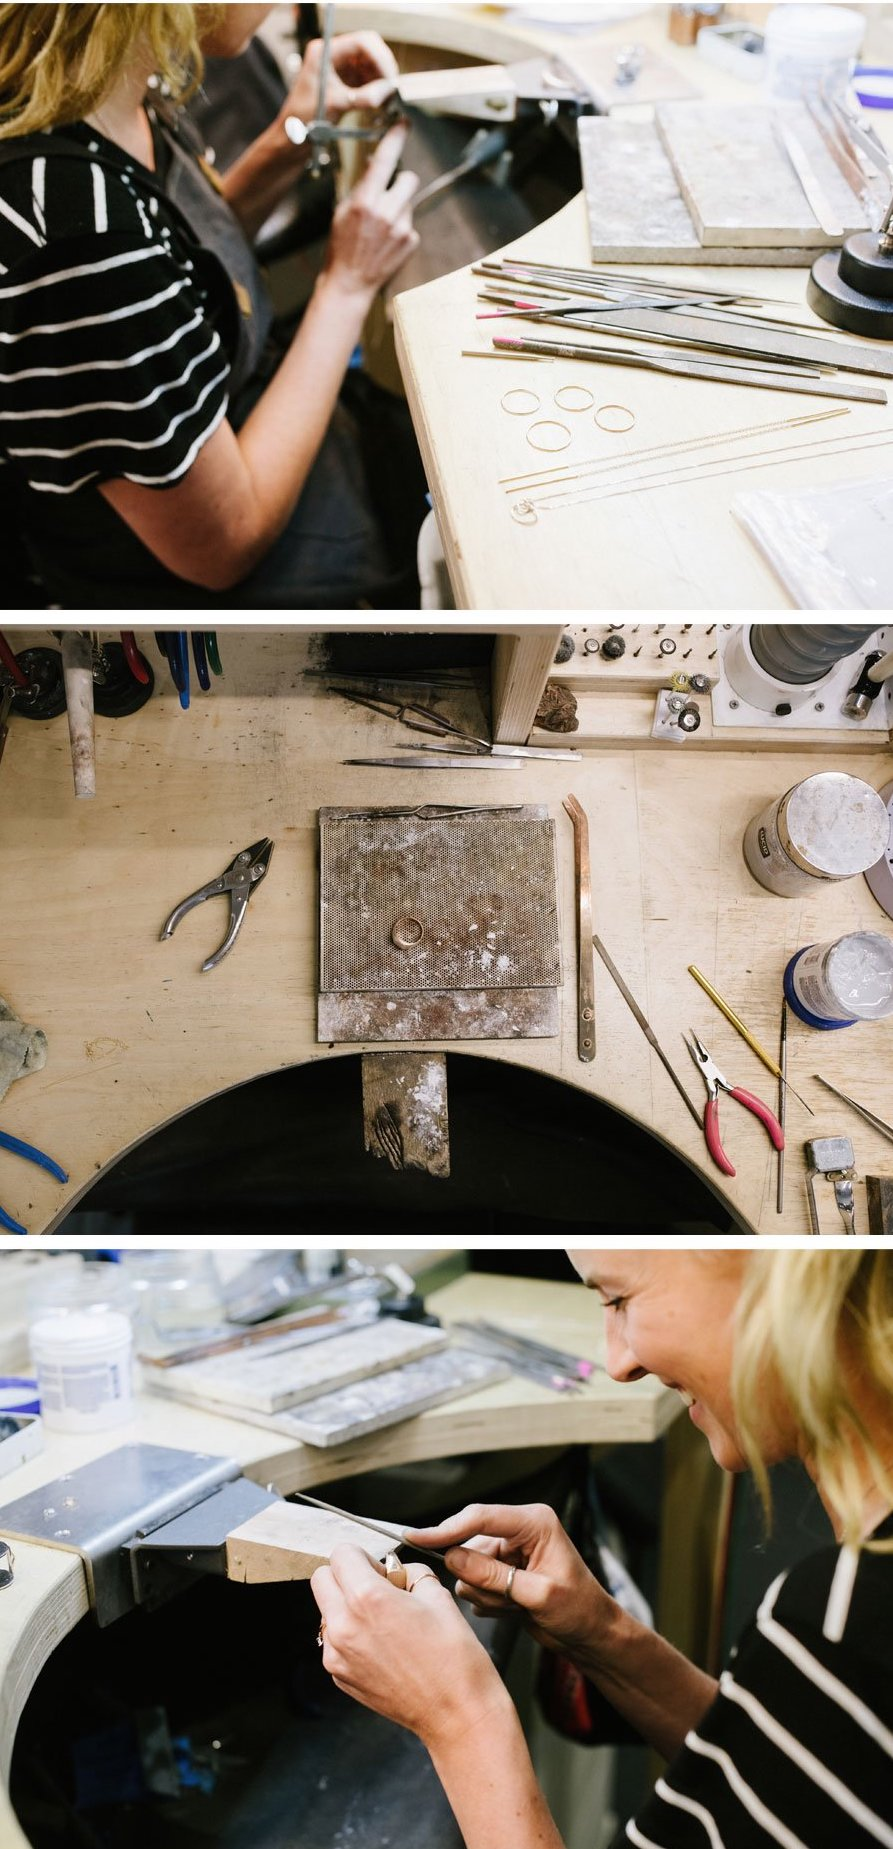 Natalie working at her work bench crafting jewellery